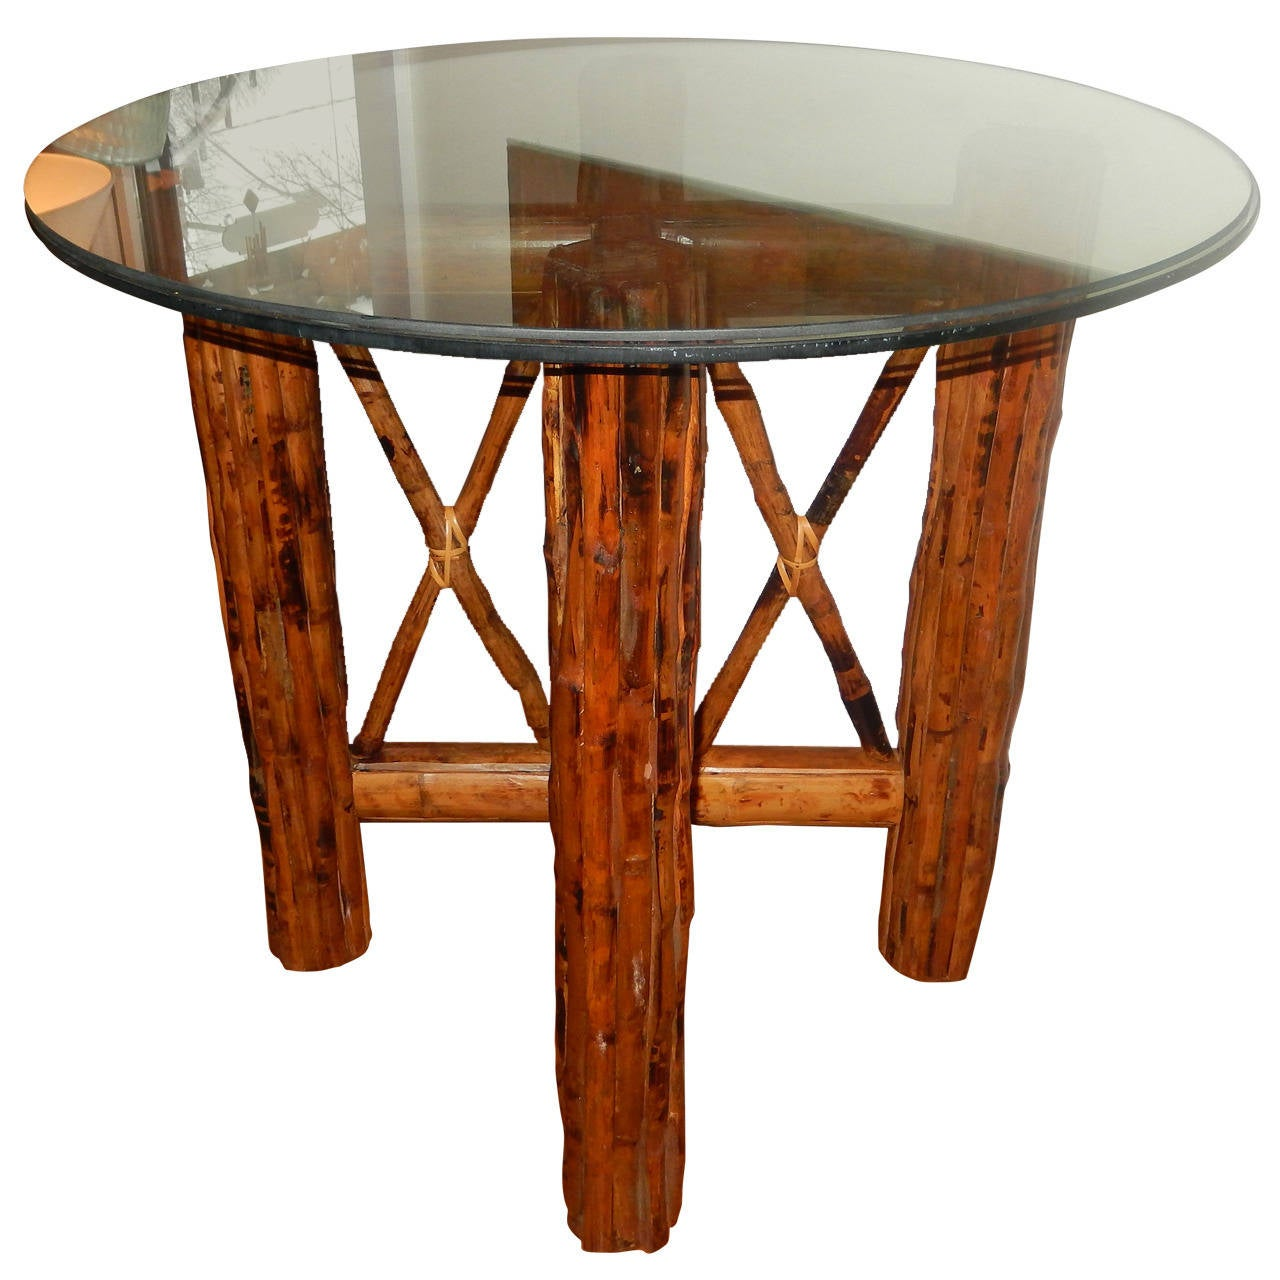 Bamboo and Tortoiseshell Finish Circular Dining Room Table  : 1913712l from www.1stdibs.com size 1280 x 1280 jpeg 135kB